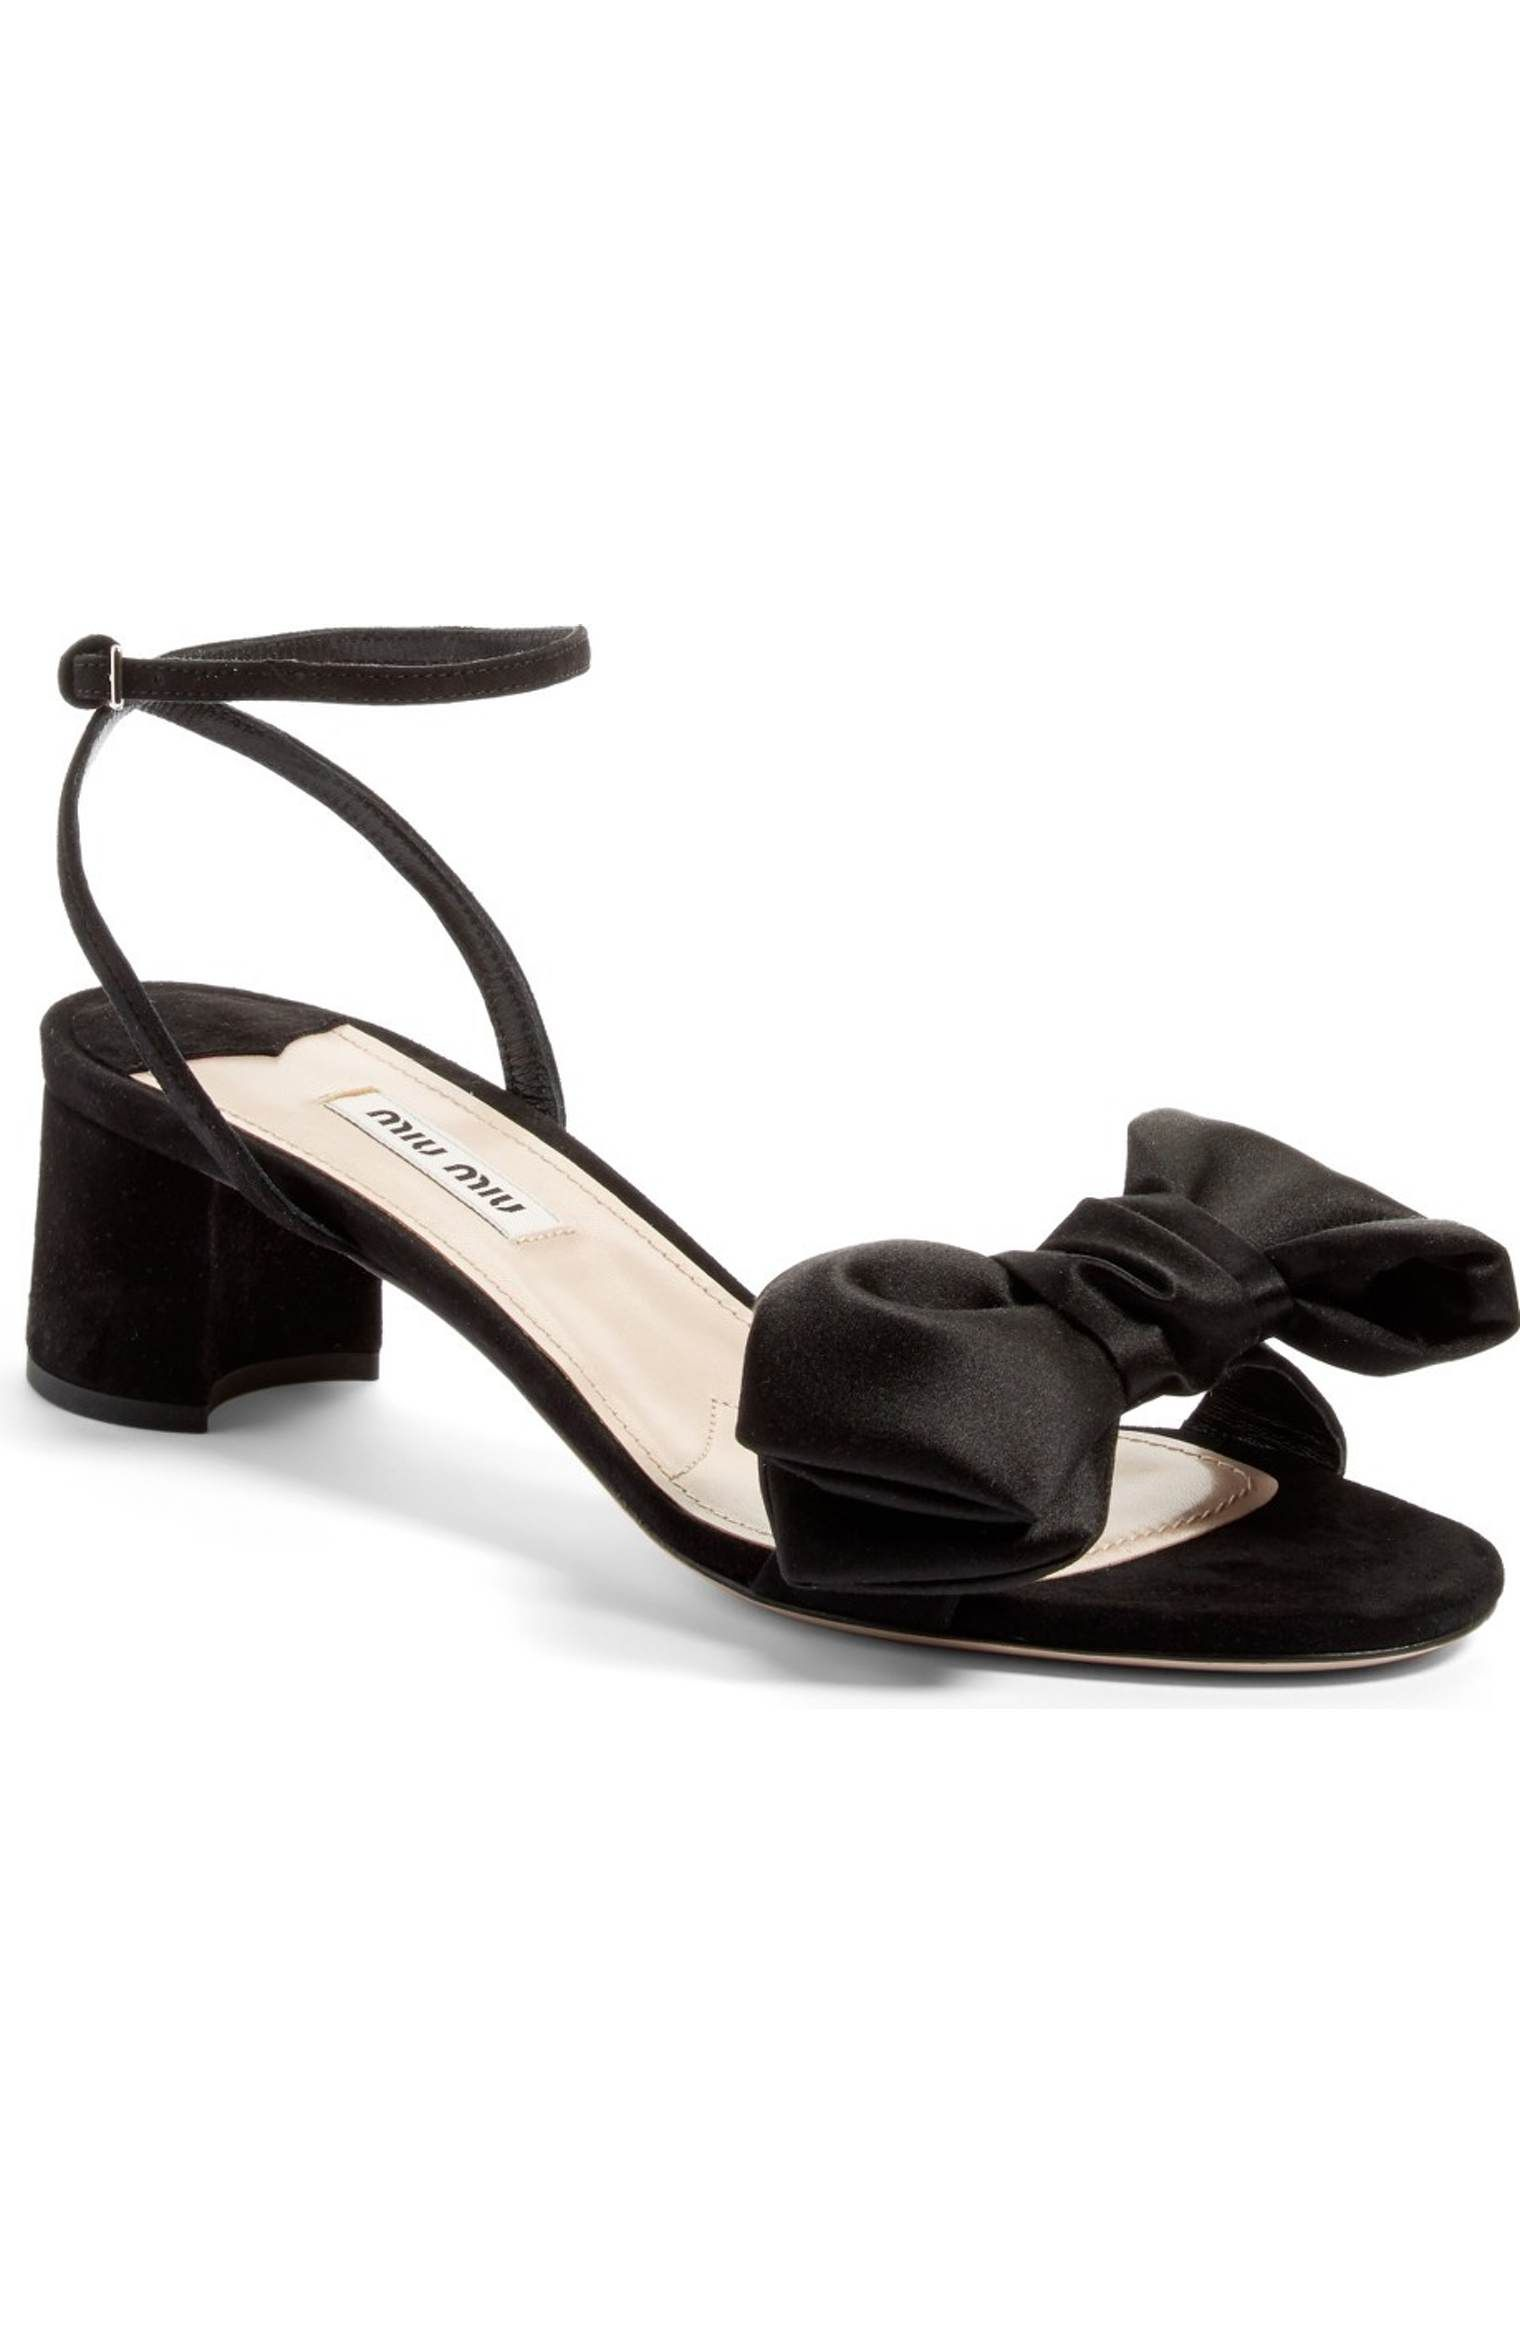 Main Image - Miu Miu Strappy Bow Sandal (Women)